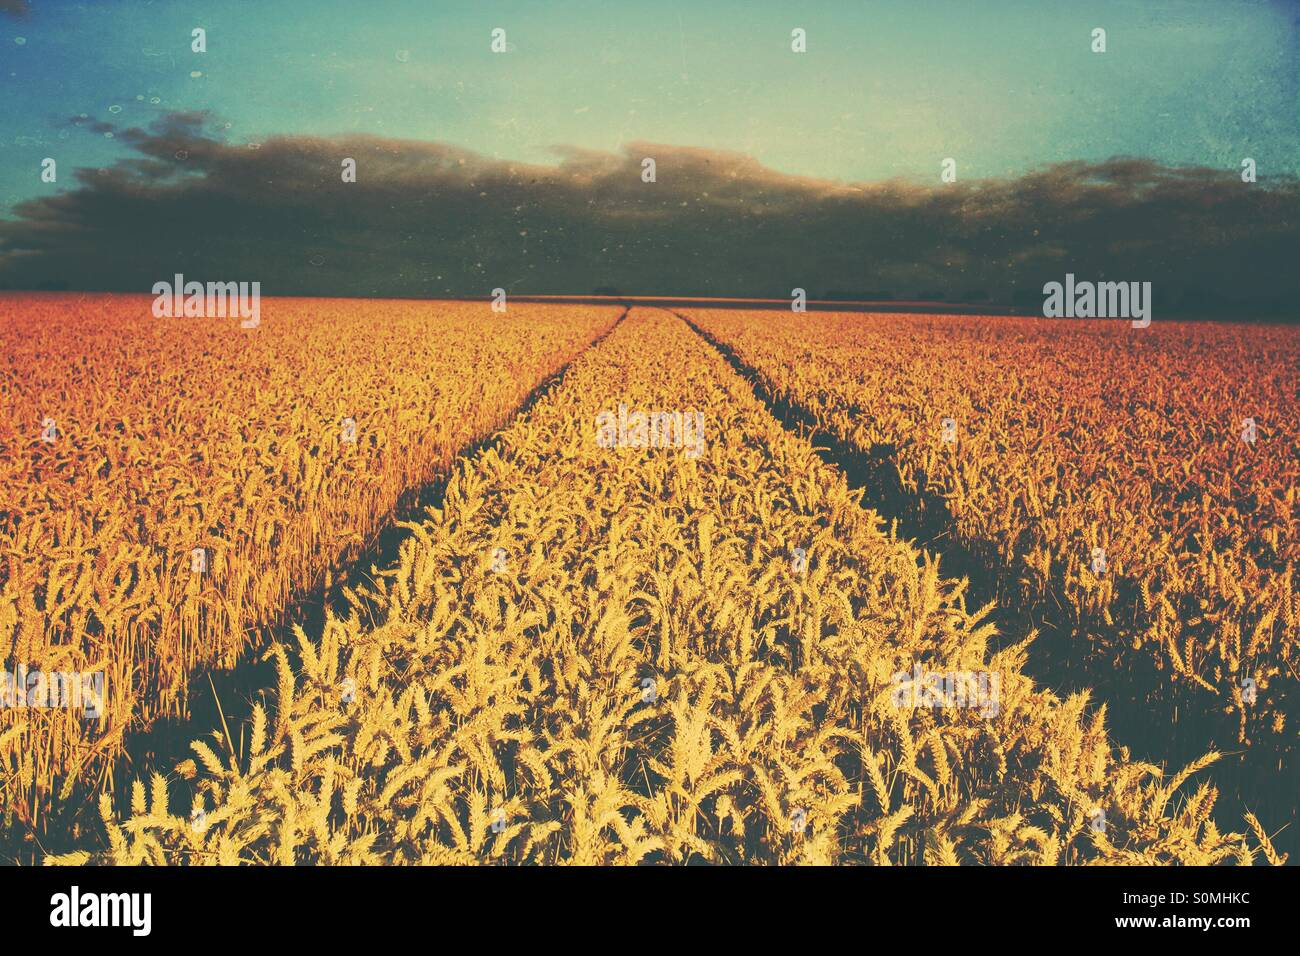 Tractor tracks disappearing into the darkness through a field of wheat. Vintage texture added. - Stock Image